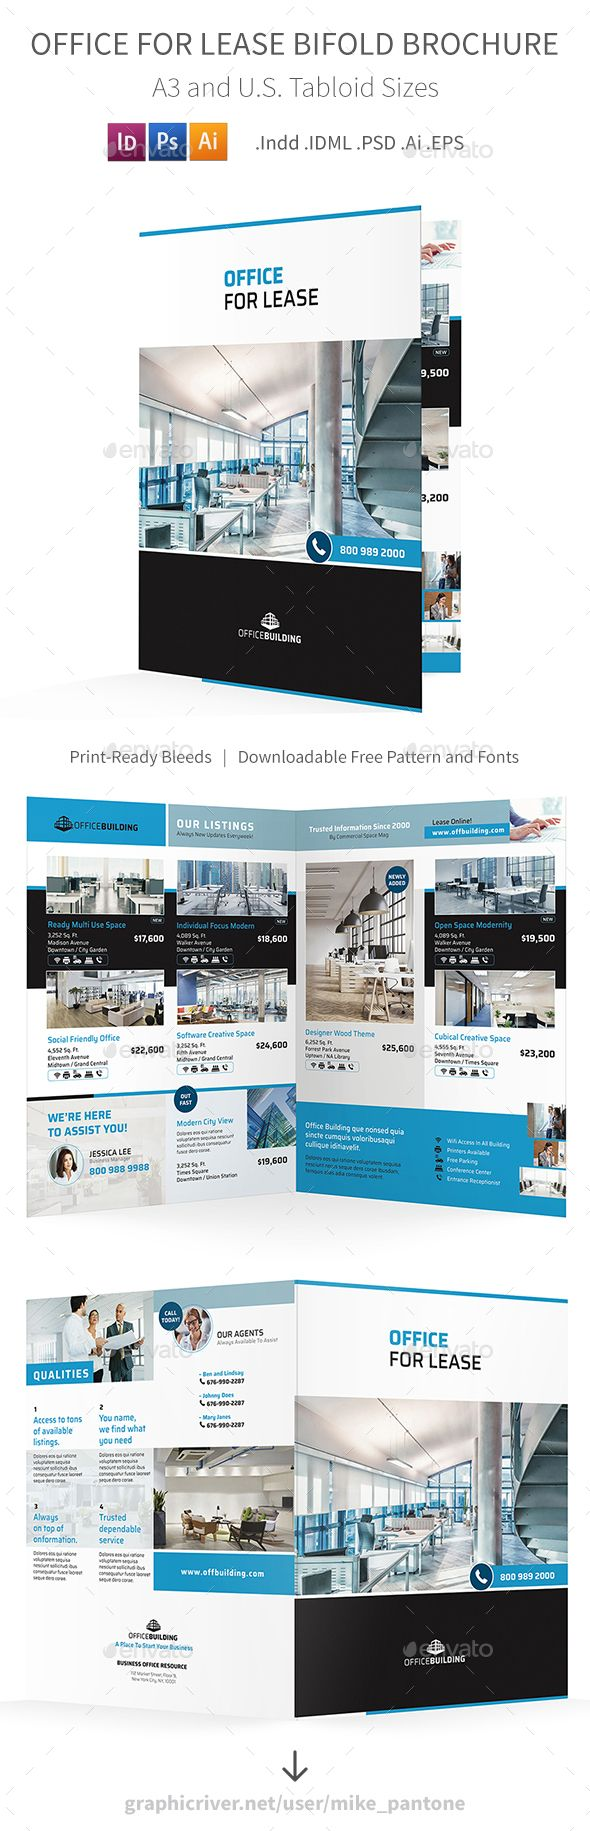 Office For Lease Bifold / Halffold Brochure Template PSD, Vector EPS, InDesign INDD, AI Illustrator